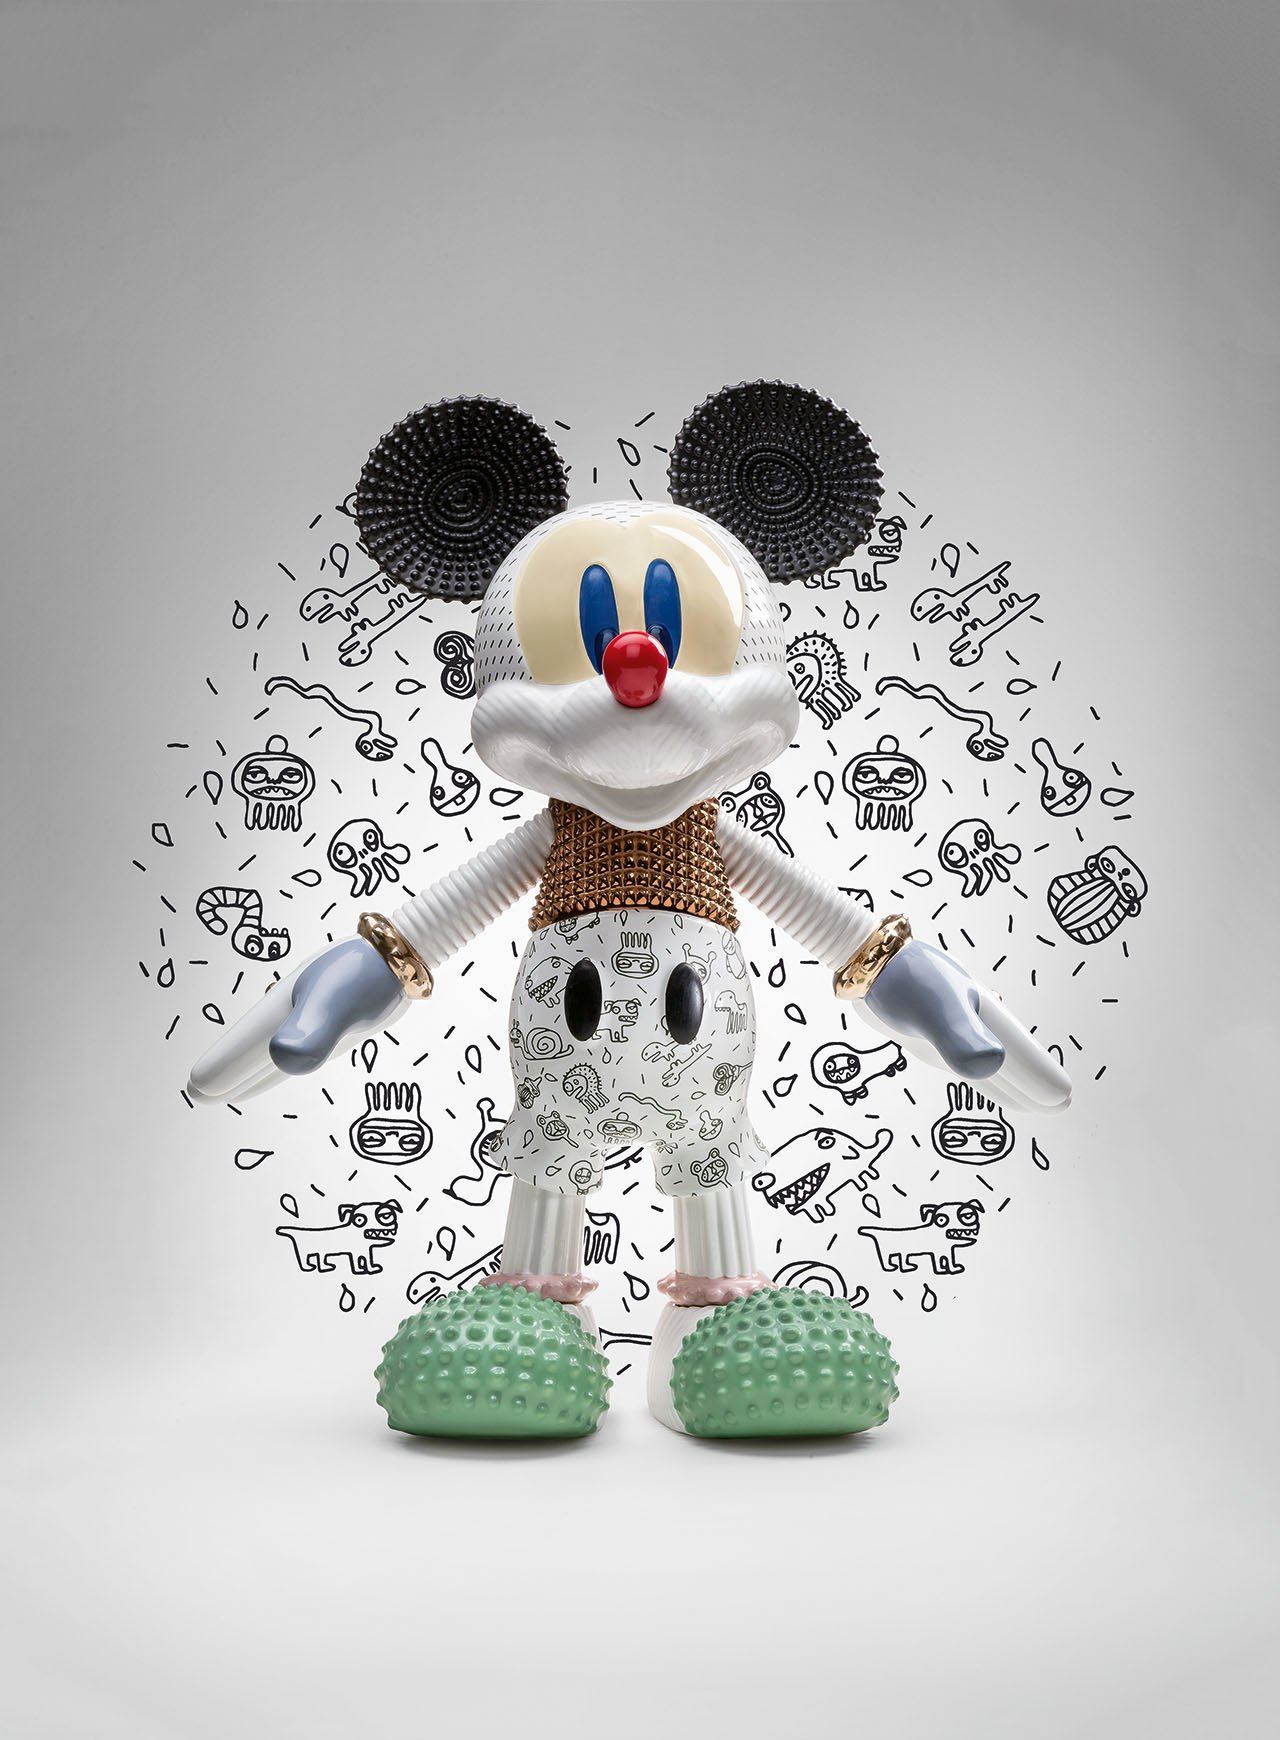 Bosa and Disney celebrate 90 years of MICKEY MOUSE. Designed by Elena Salmistraro. Photo © Bosa.